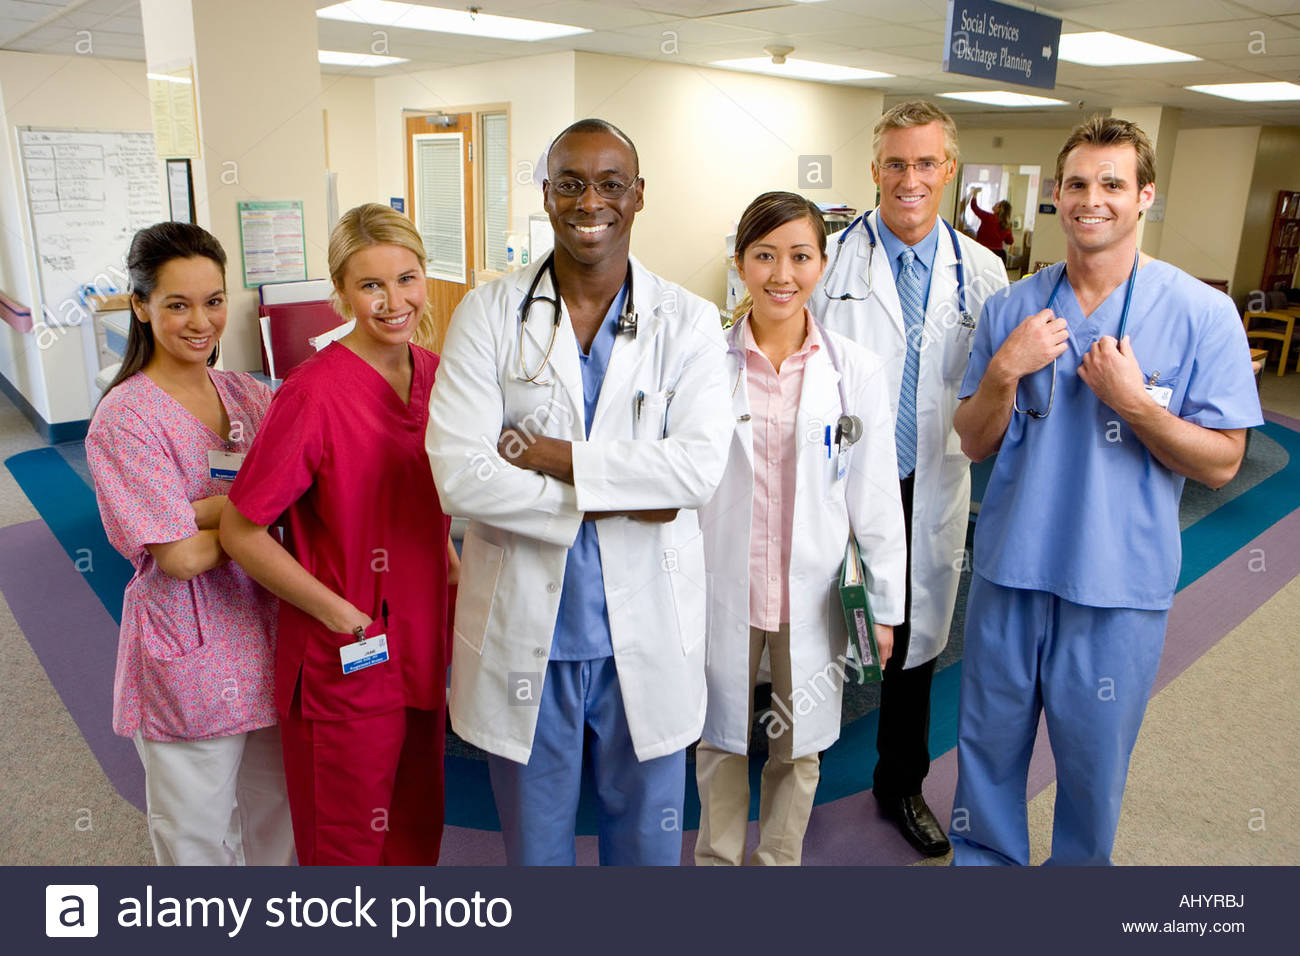 Hospital staff standing in ward, smiling, portrait - Stock Image